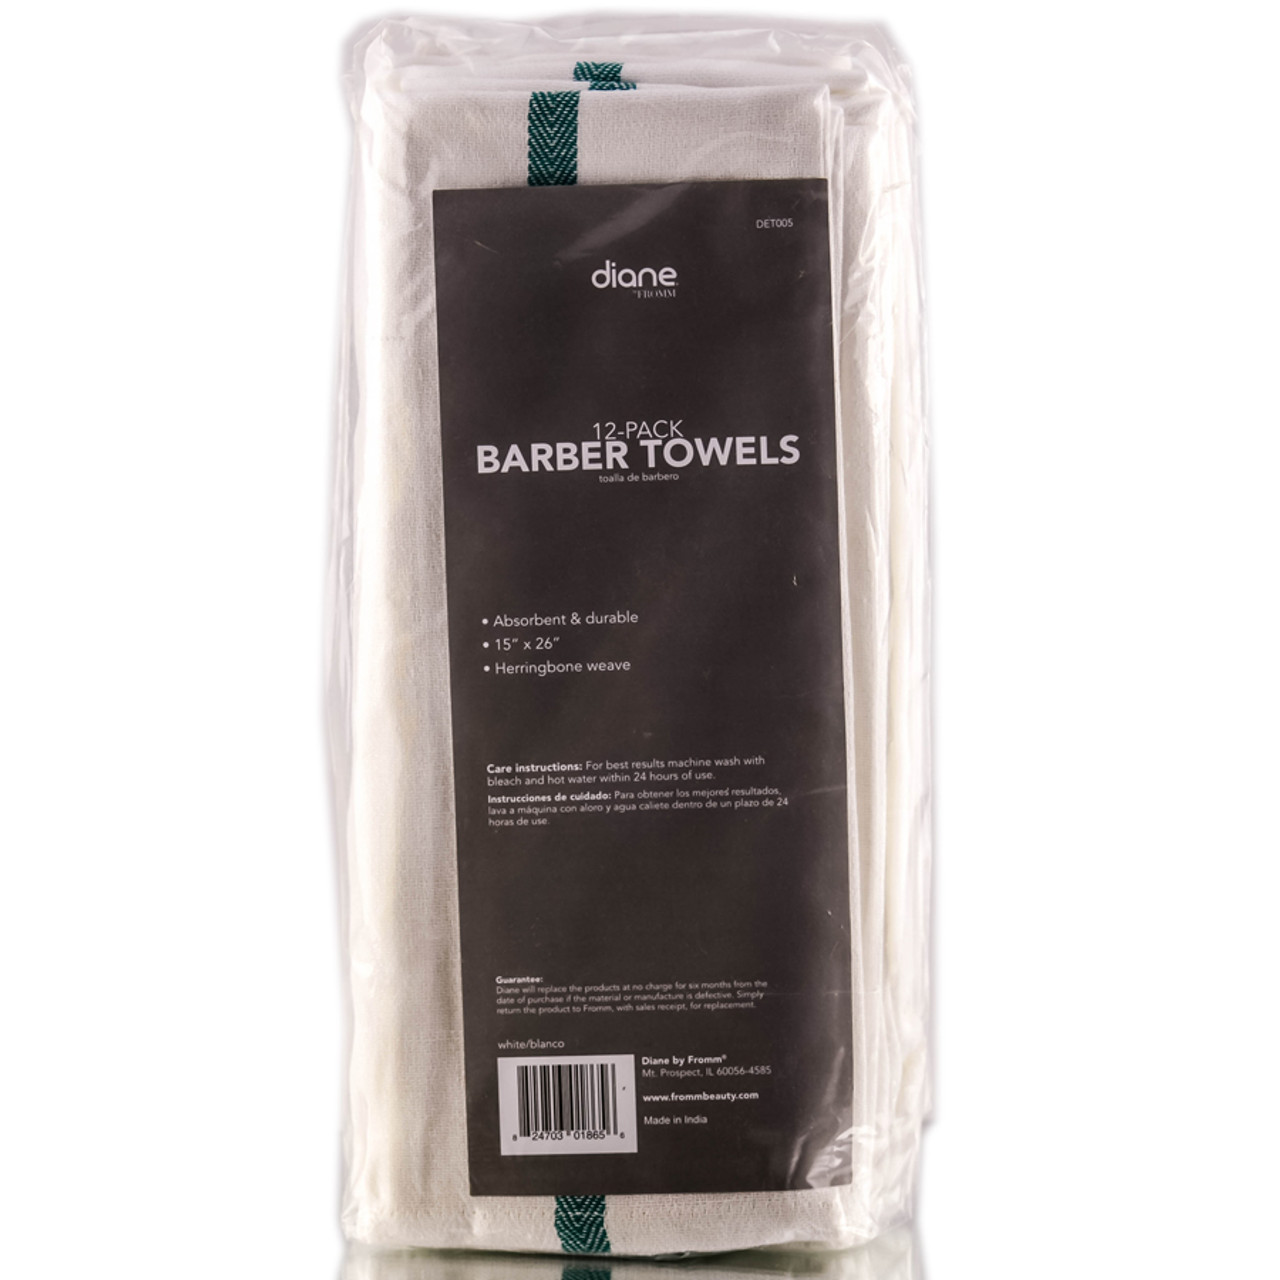 Diane By Fromm Barber Towels Sleekshop Com Formerly